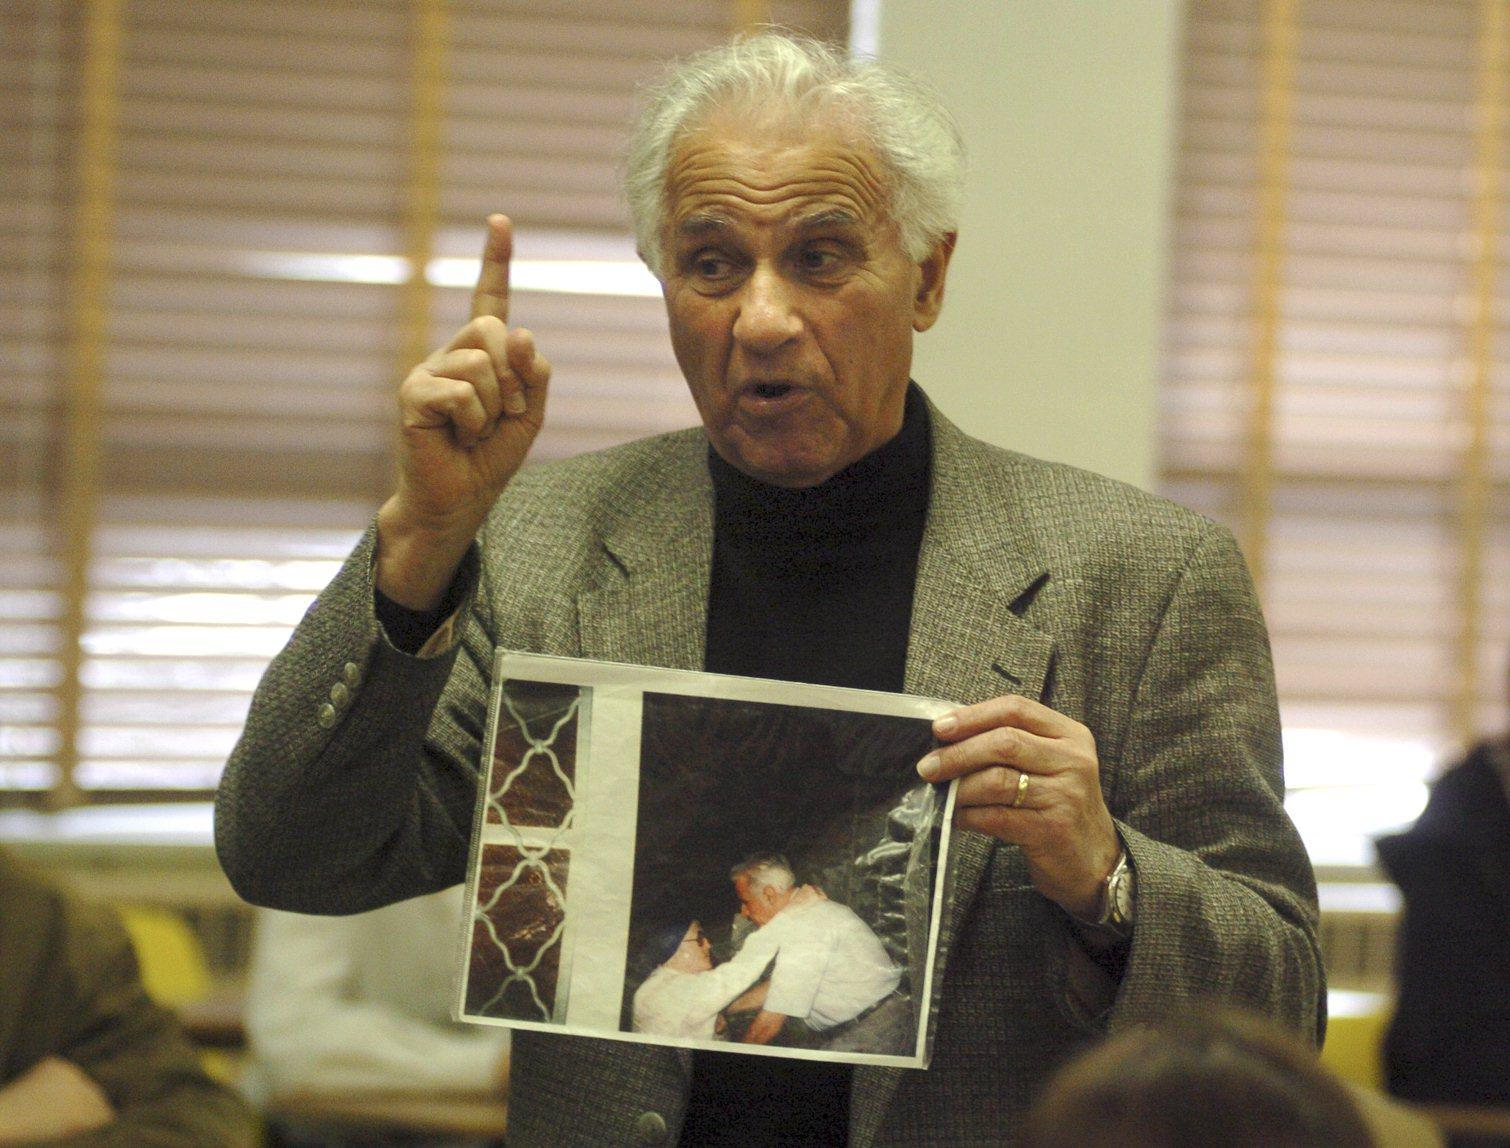 Leo Bretholz, an Holocaust survivor, speaks to students at the John Carroll School in Bel Air. He is showing a picture of himself and Sister Jeanne D'Arc when they were reunited in 1999 in France. Sister Jeanne D'Arc had helped him in 1944 when he was rushed to St. Vincent's Hospital in France for emergency surgery